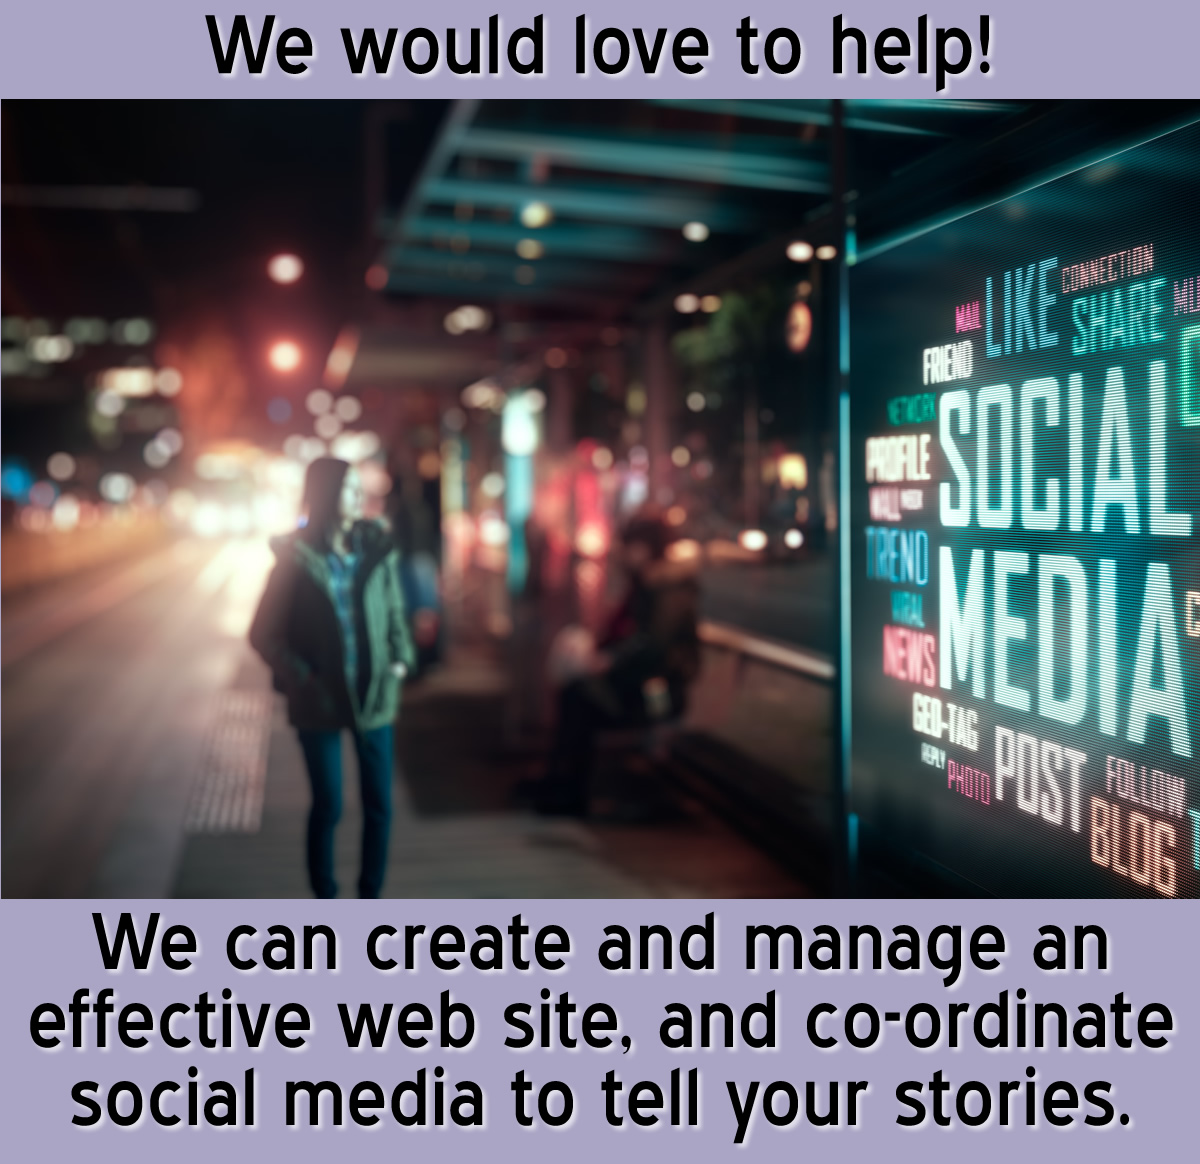 We can create and manage an effective web site, and co-ordinate social media to tell your stories.